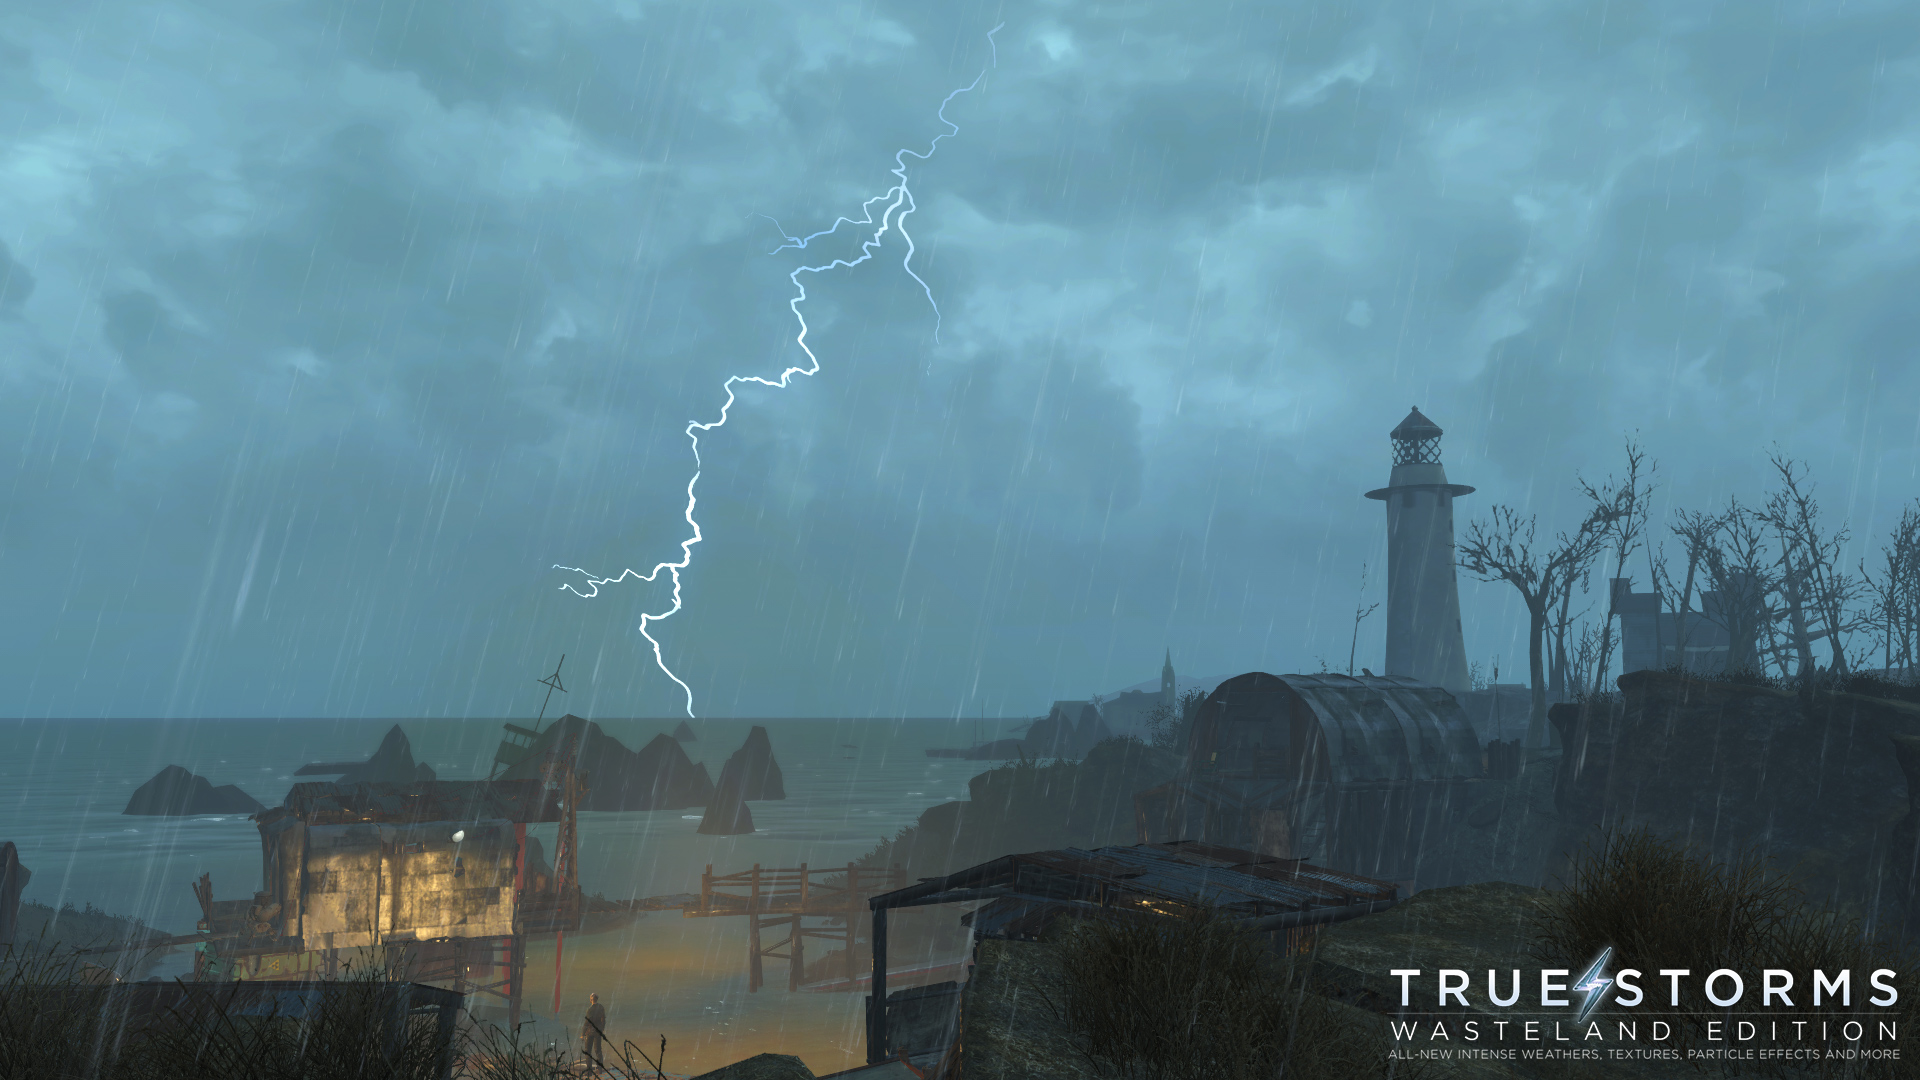 True Storms   Wasteland Edition  Thunder Rain Weather Redone  at Fallout 4  Nexus   Mods and communityTrue Storms   Wasteland Edition  Thunder Rain Weather Redone  at  . Red Alert Lightning Storm. Home Design Ideas